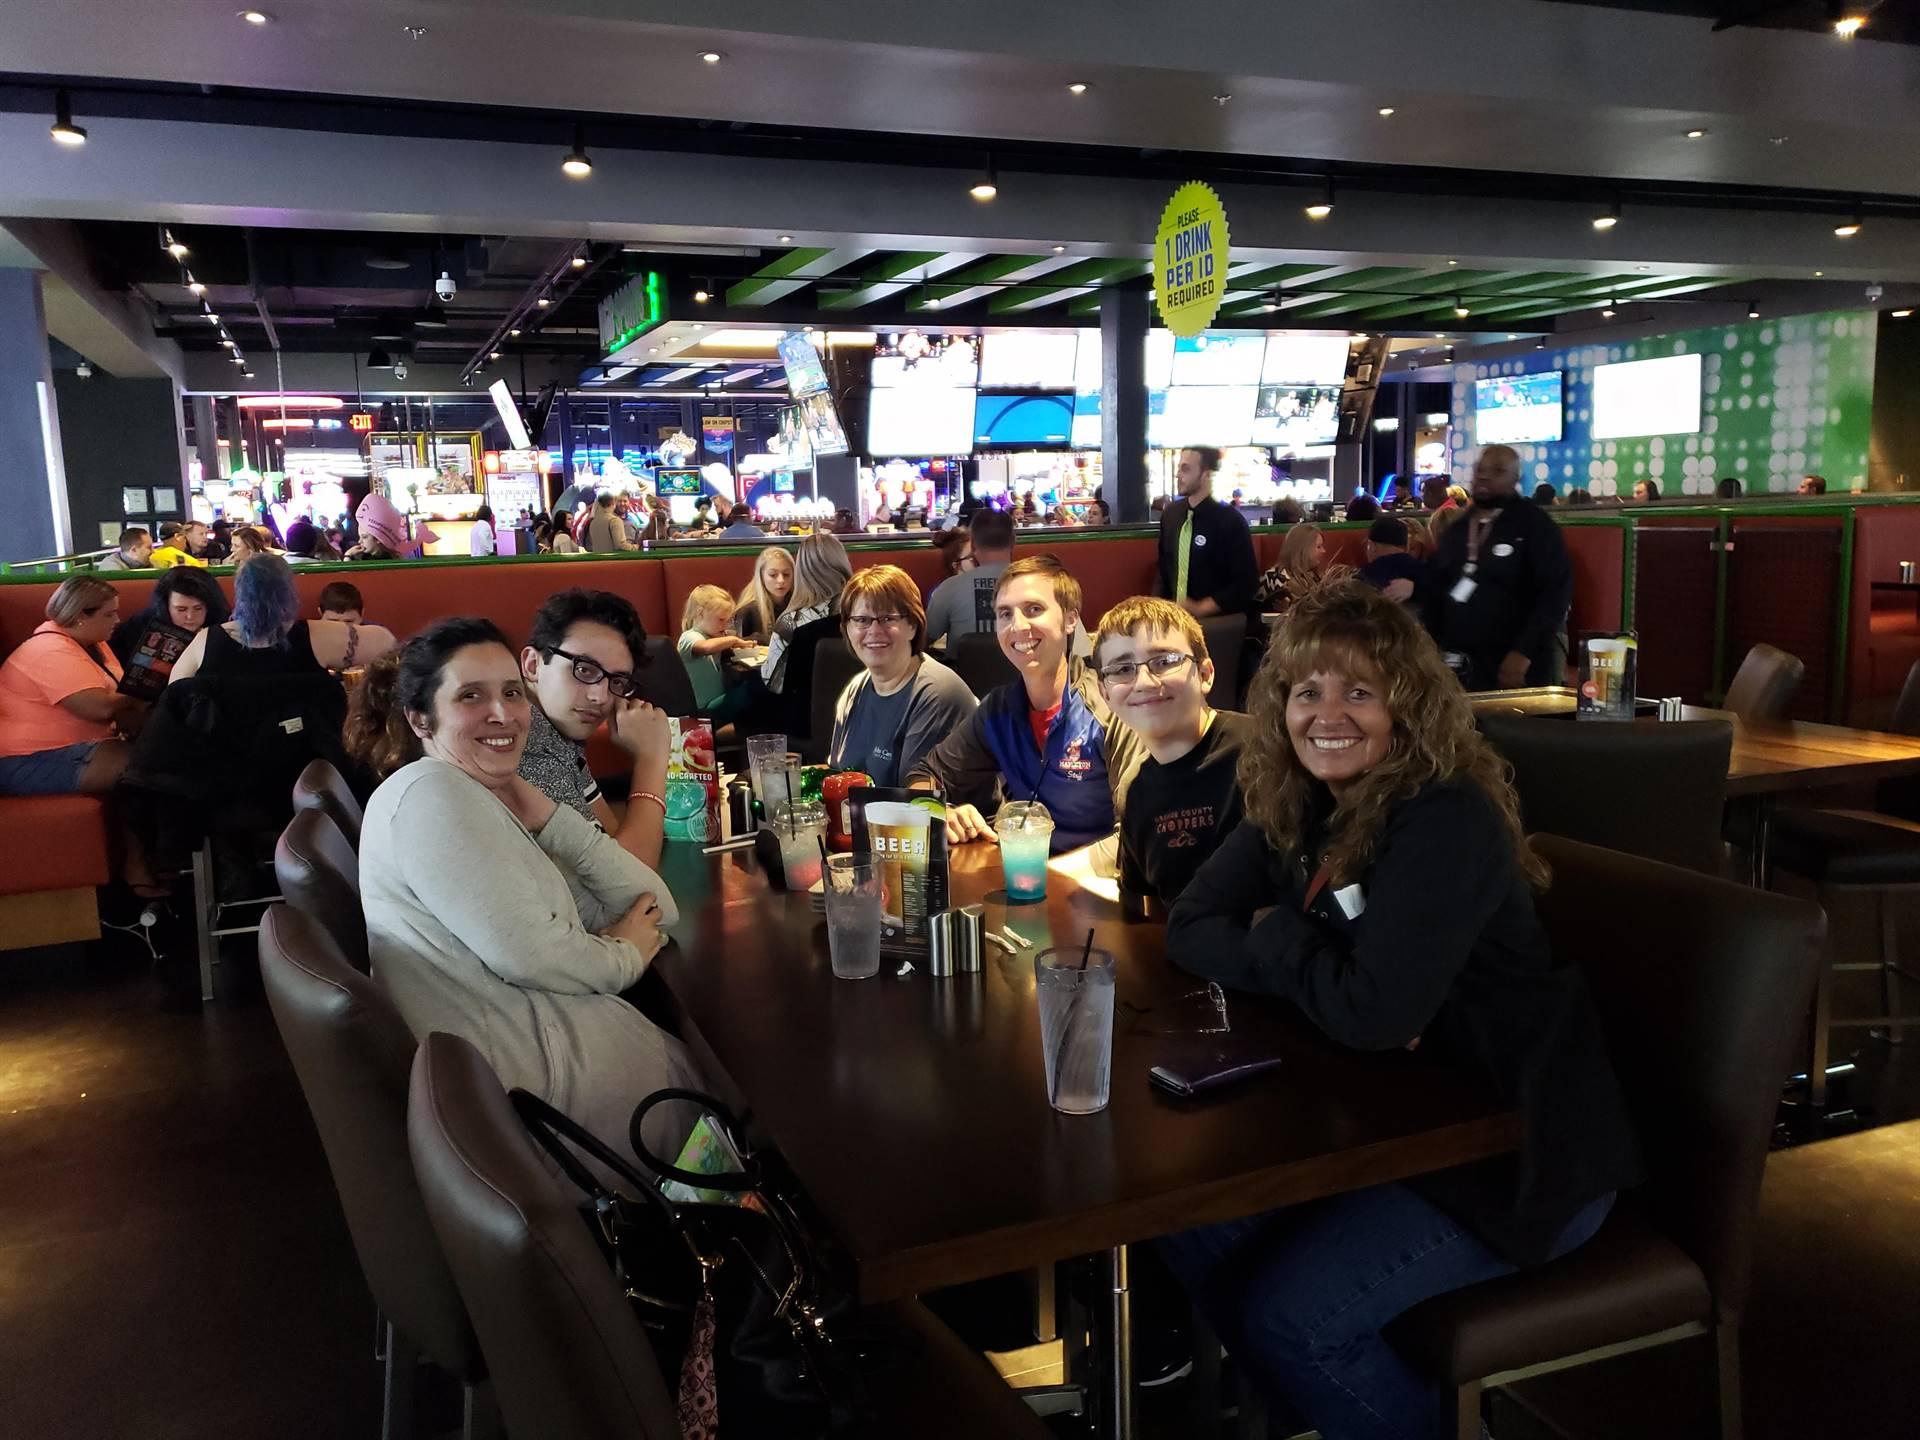 Dinner at Dave and Busters